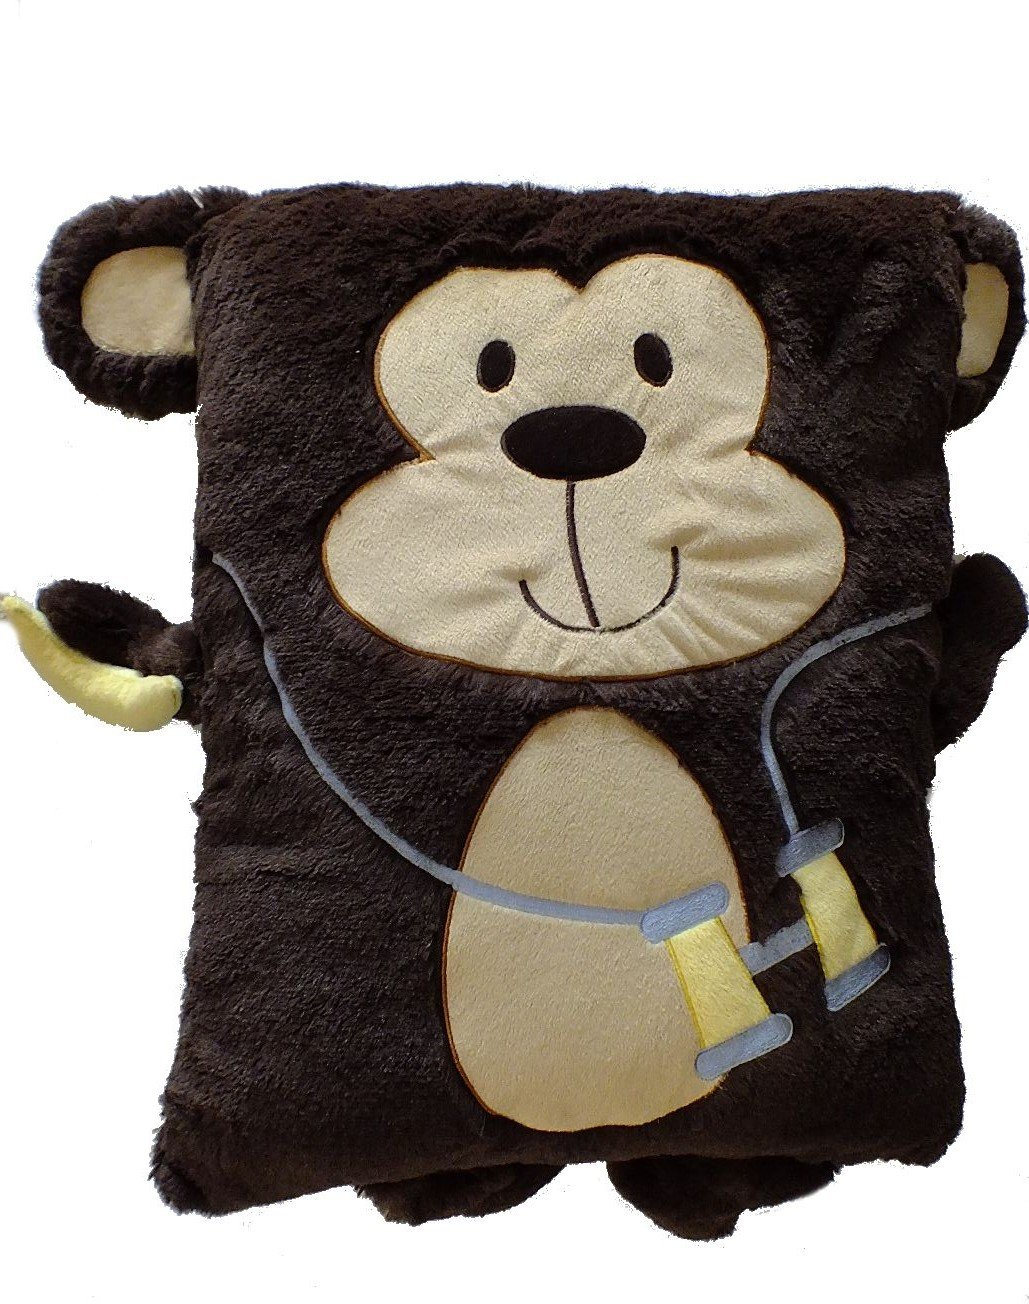 Monkey Blankets and Pillows - Totally Kids, Totally Bedrooms - Kids Bedroom Ideas